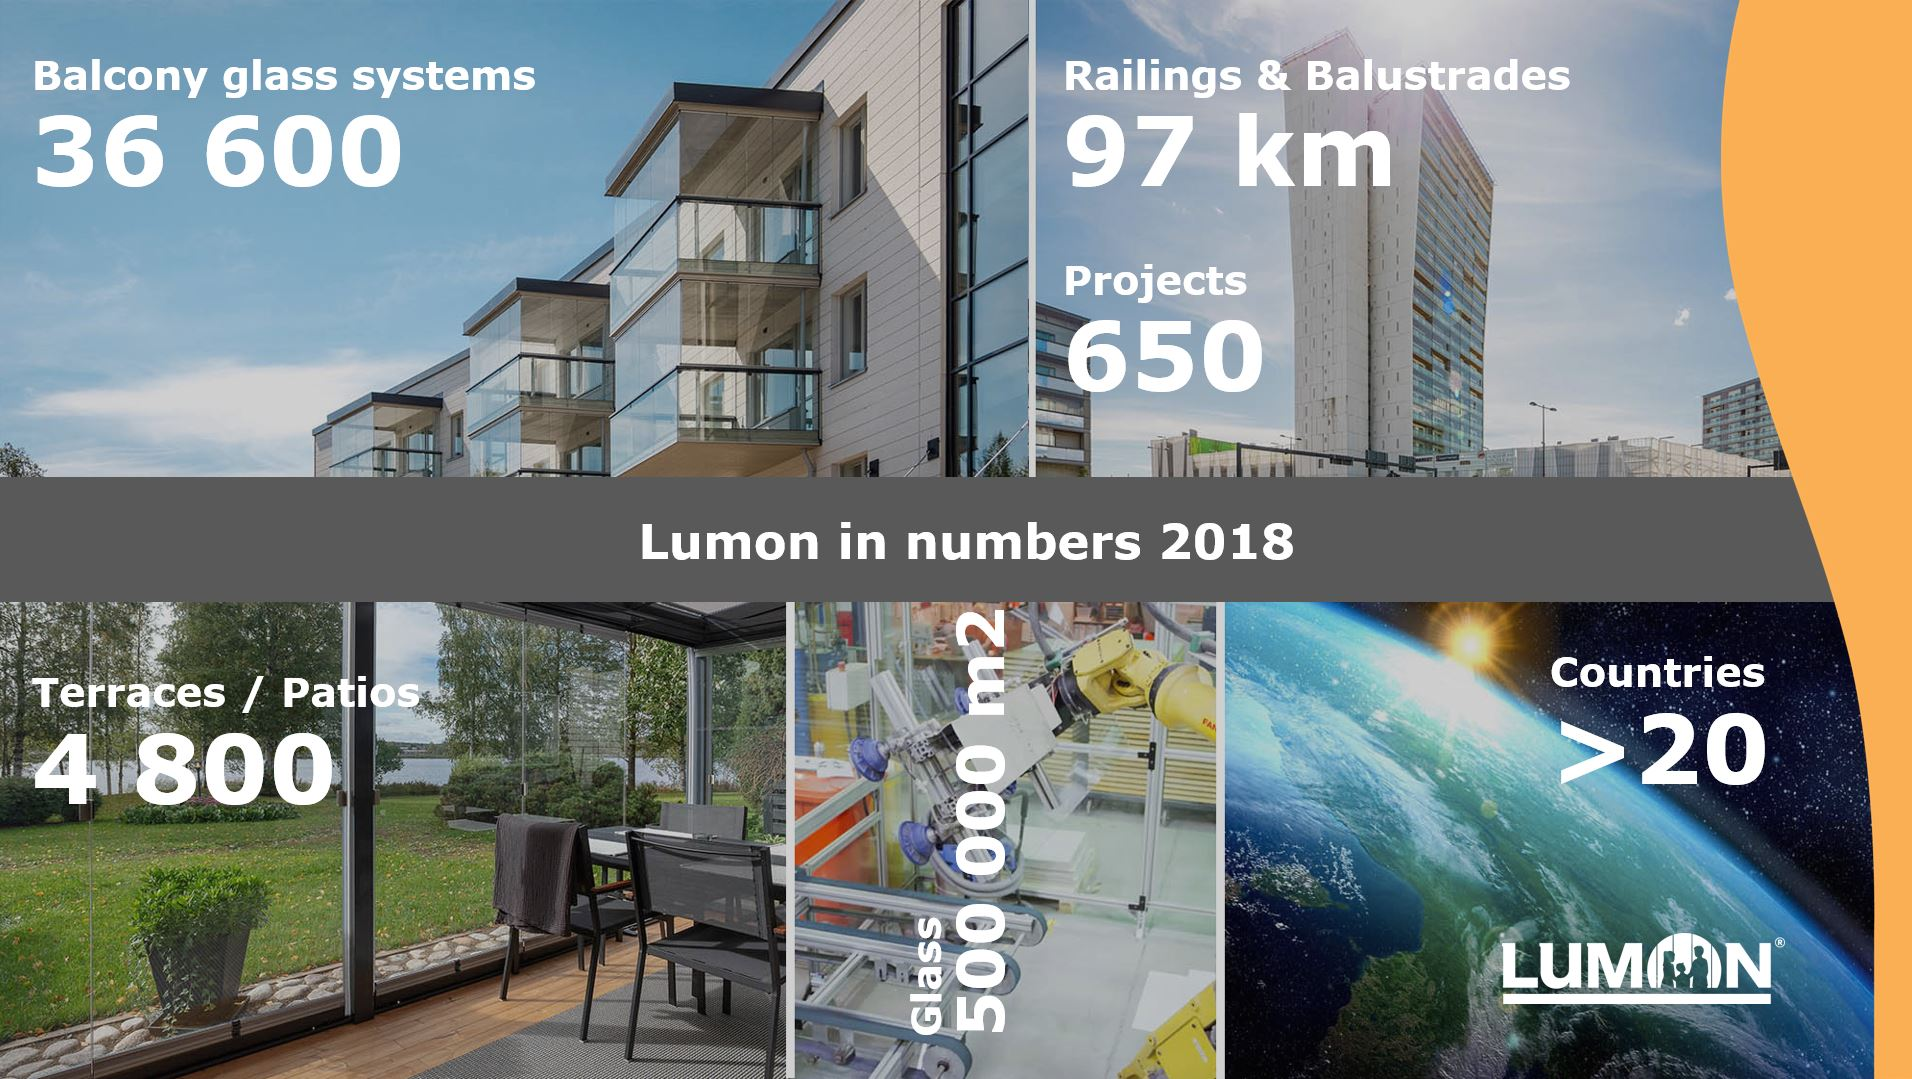 Lumon in numbers